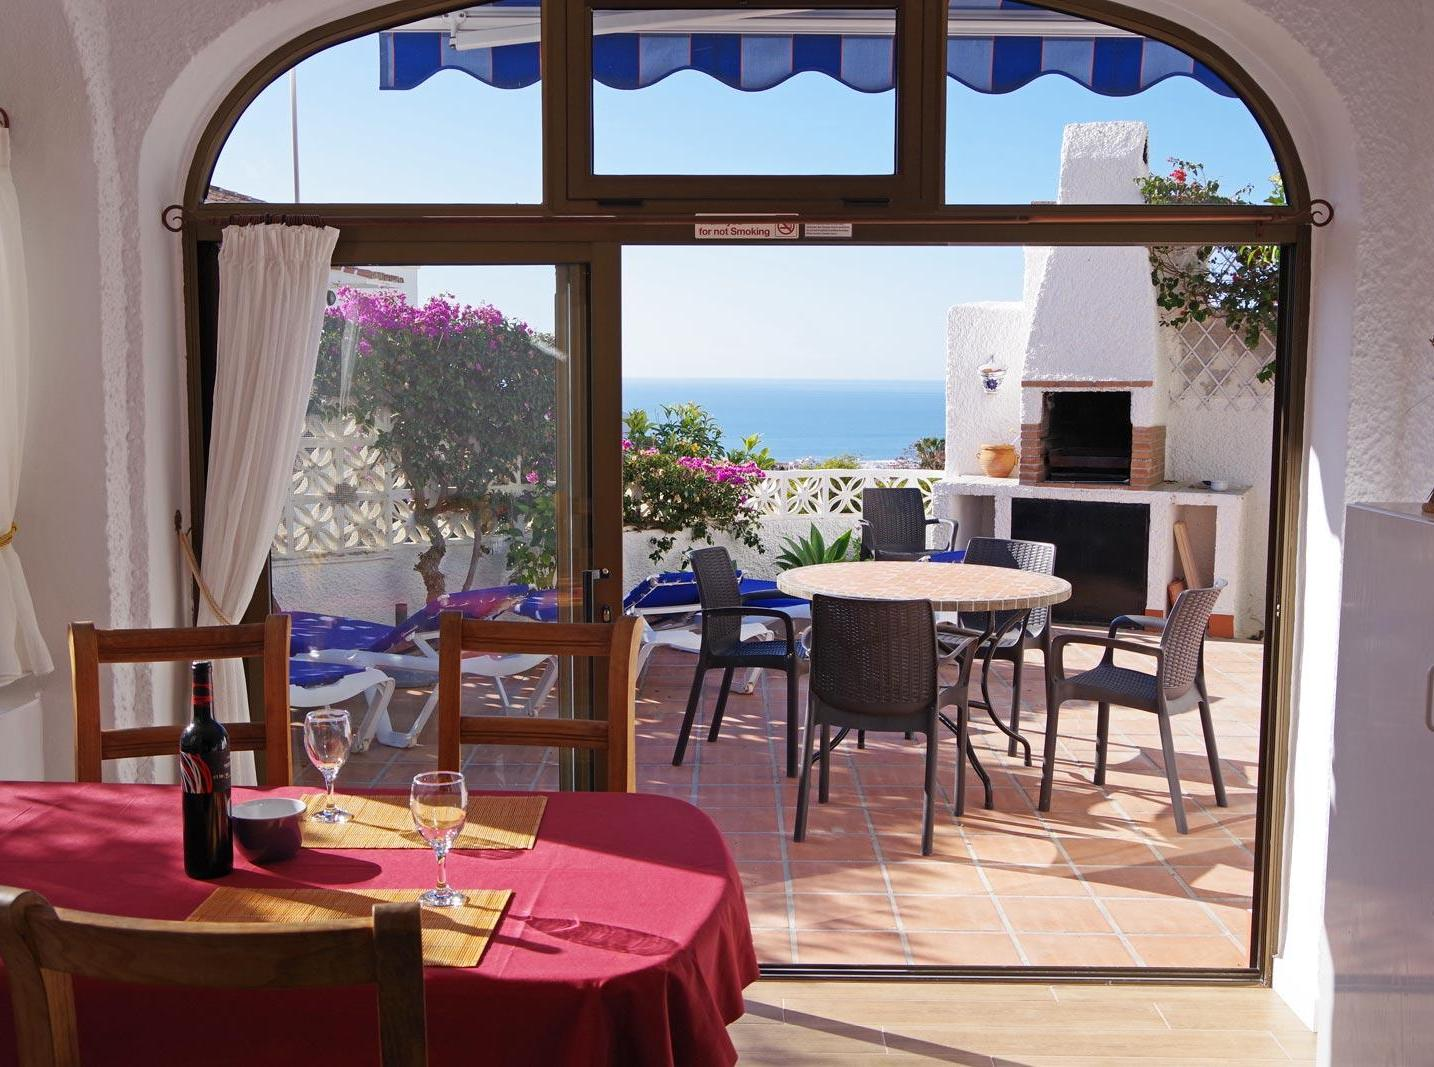 Dining room overlooking the Mediterranean Sea